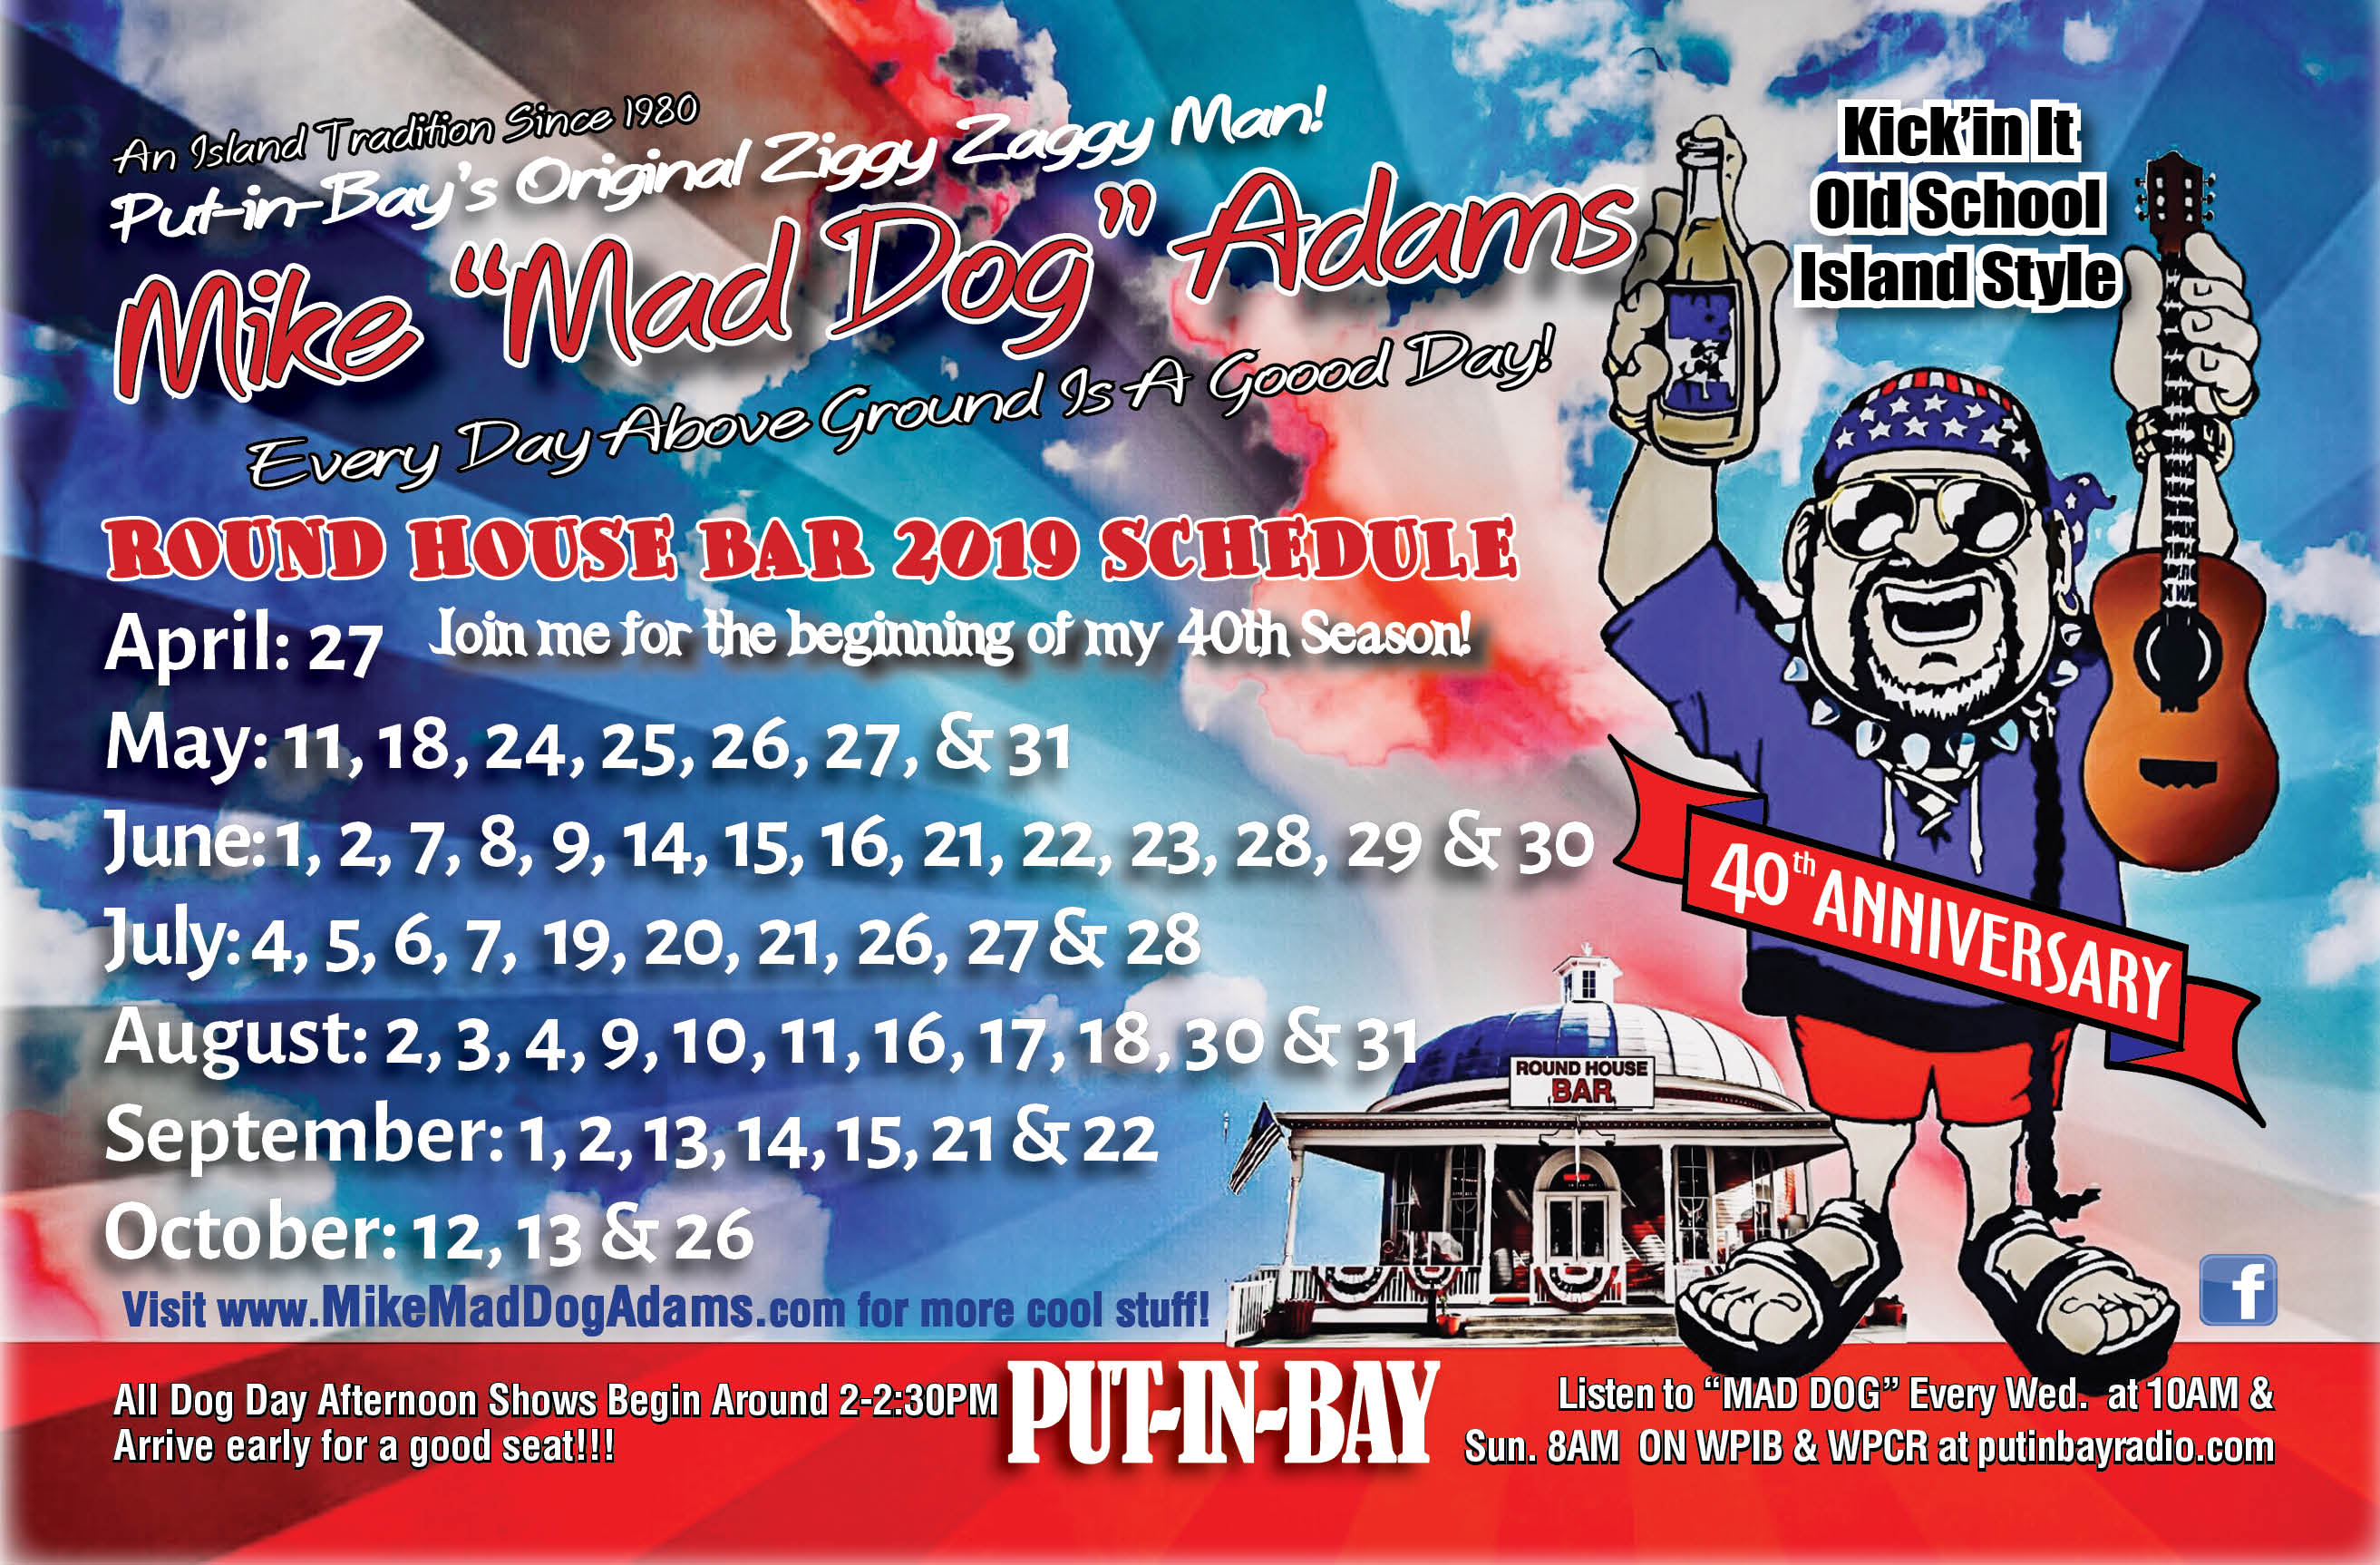 2018 Round House Bar Schedule